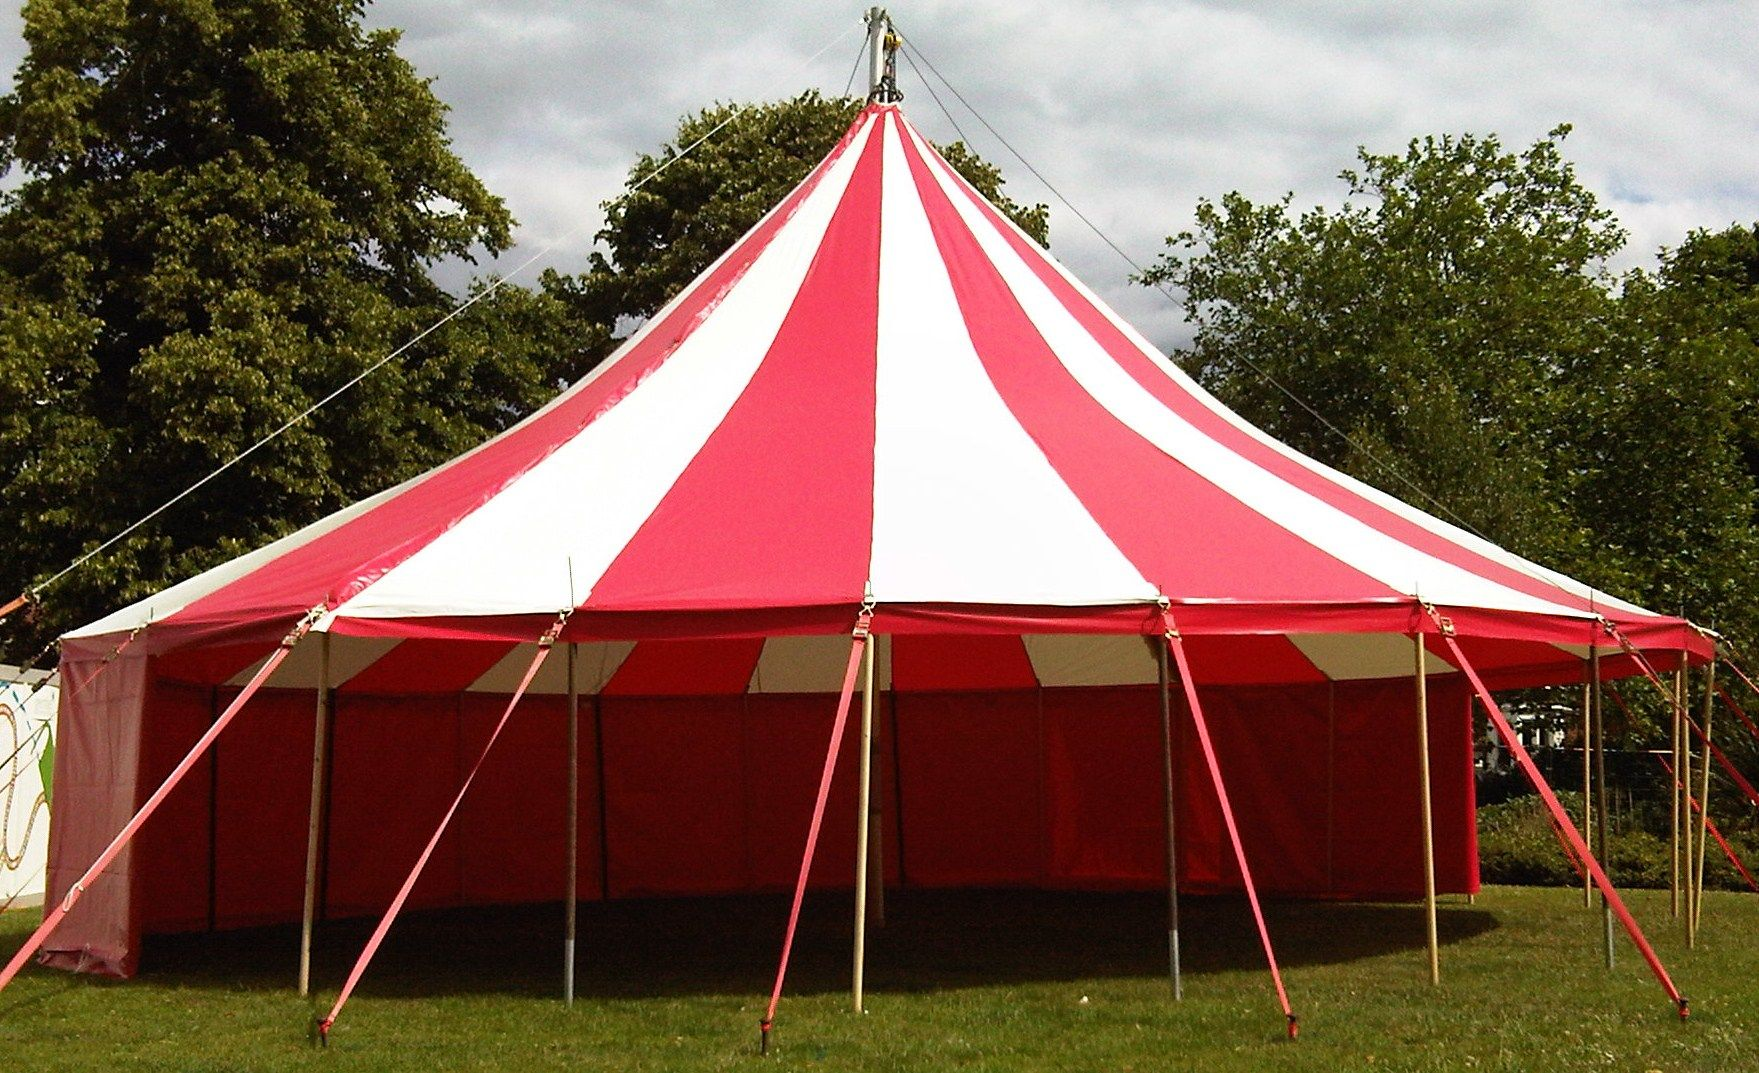 Big top hire circus showsmarquee hire party tent hire and event hire equipment & 12m Red and White Big Top. via mahala knight google search ...